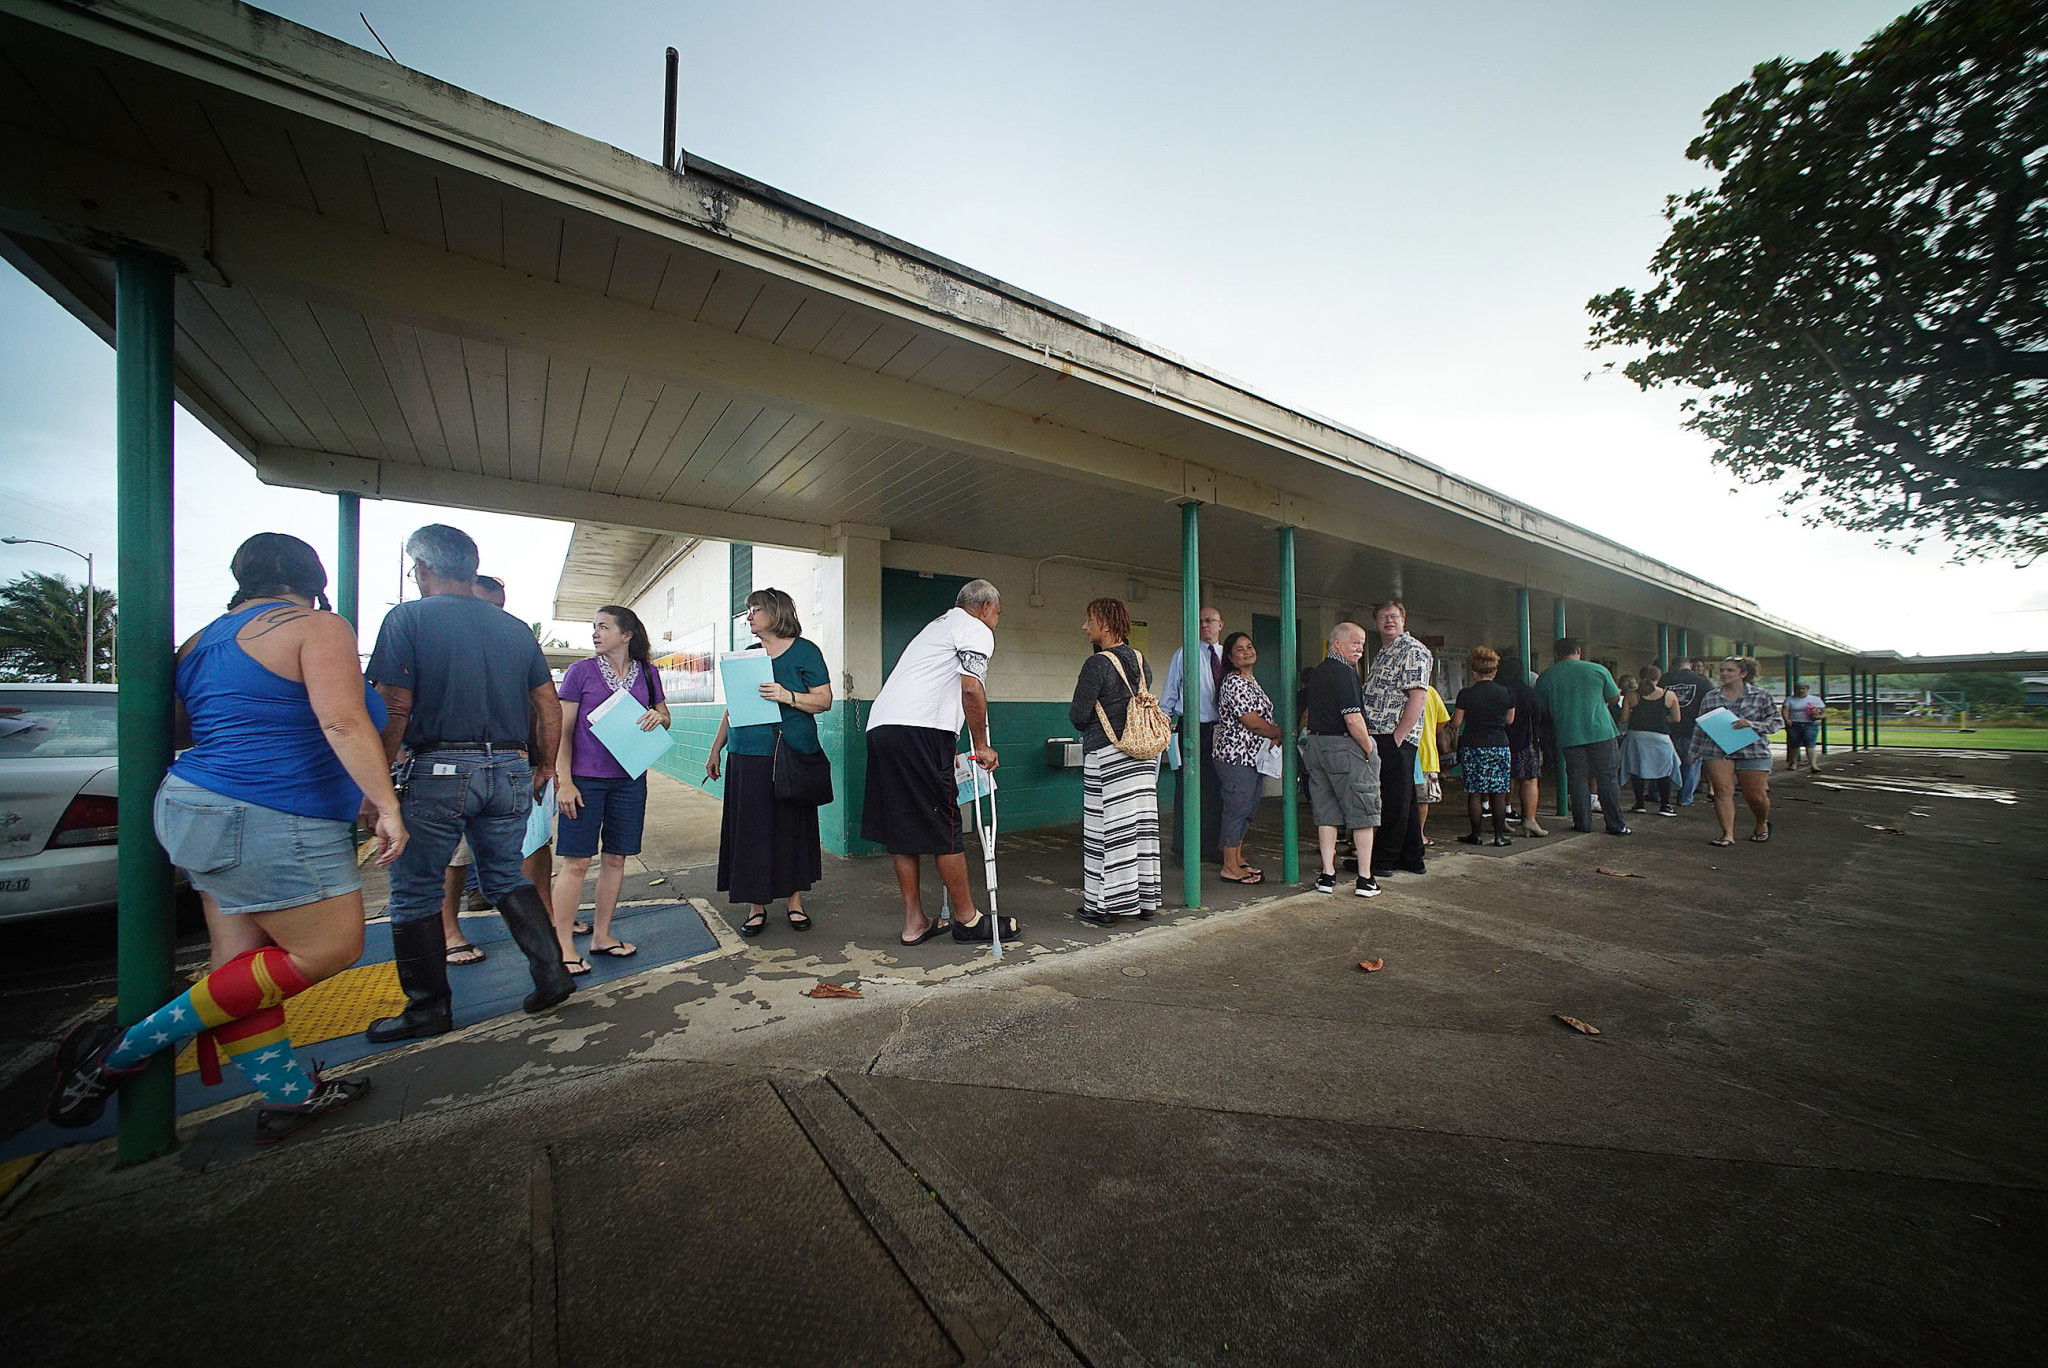 <p>Scores of people queued up to have their paper ballots scanned after voting at Hauula Elementary School. Long lines were common sights at polling places. — Cory Lum/Civil Beat</p>